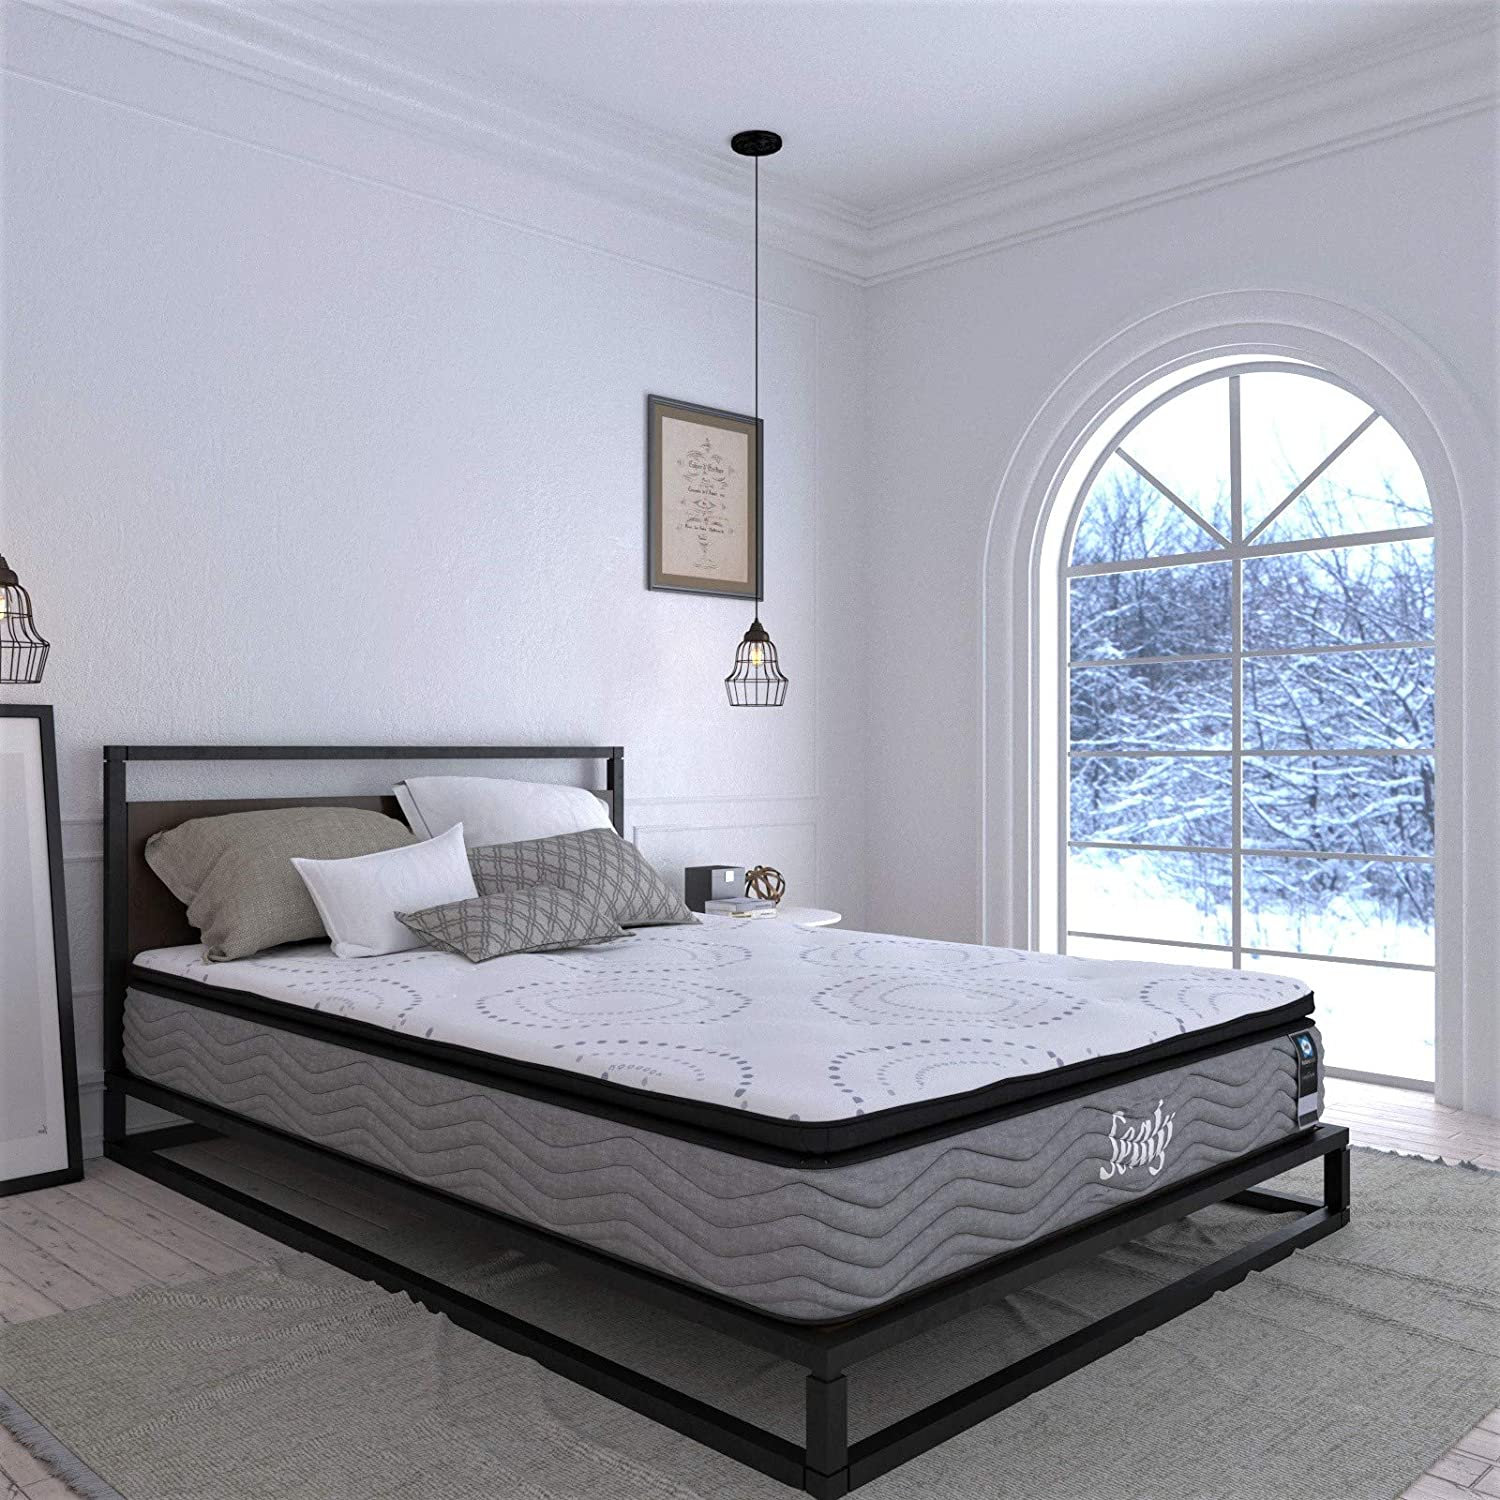 Sealy Firm Evolution Sale SALE% OFF Mattress - Box B Without Single Finally resale start Fritz